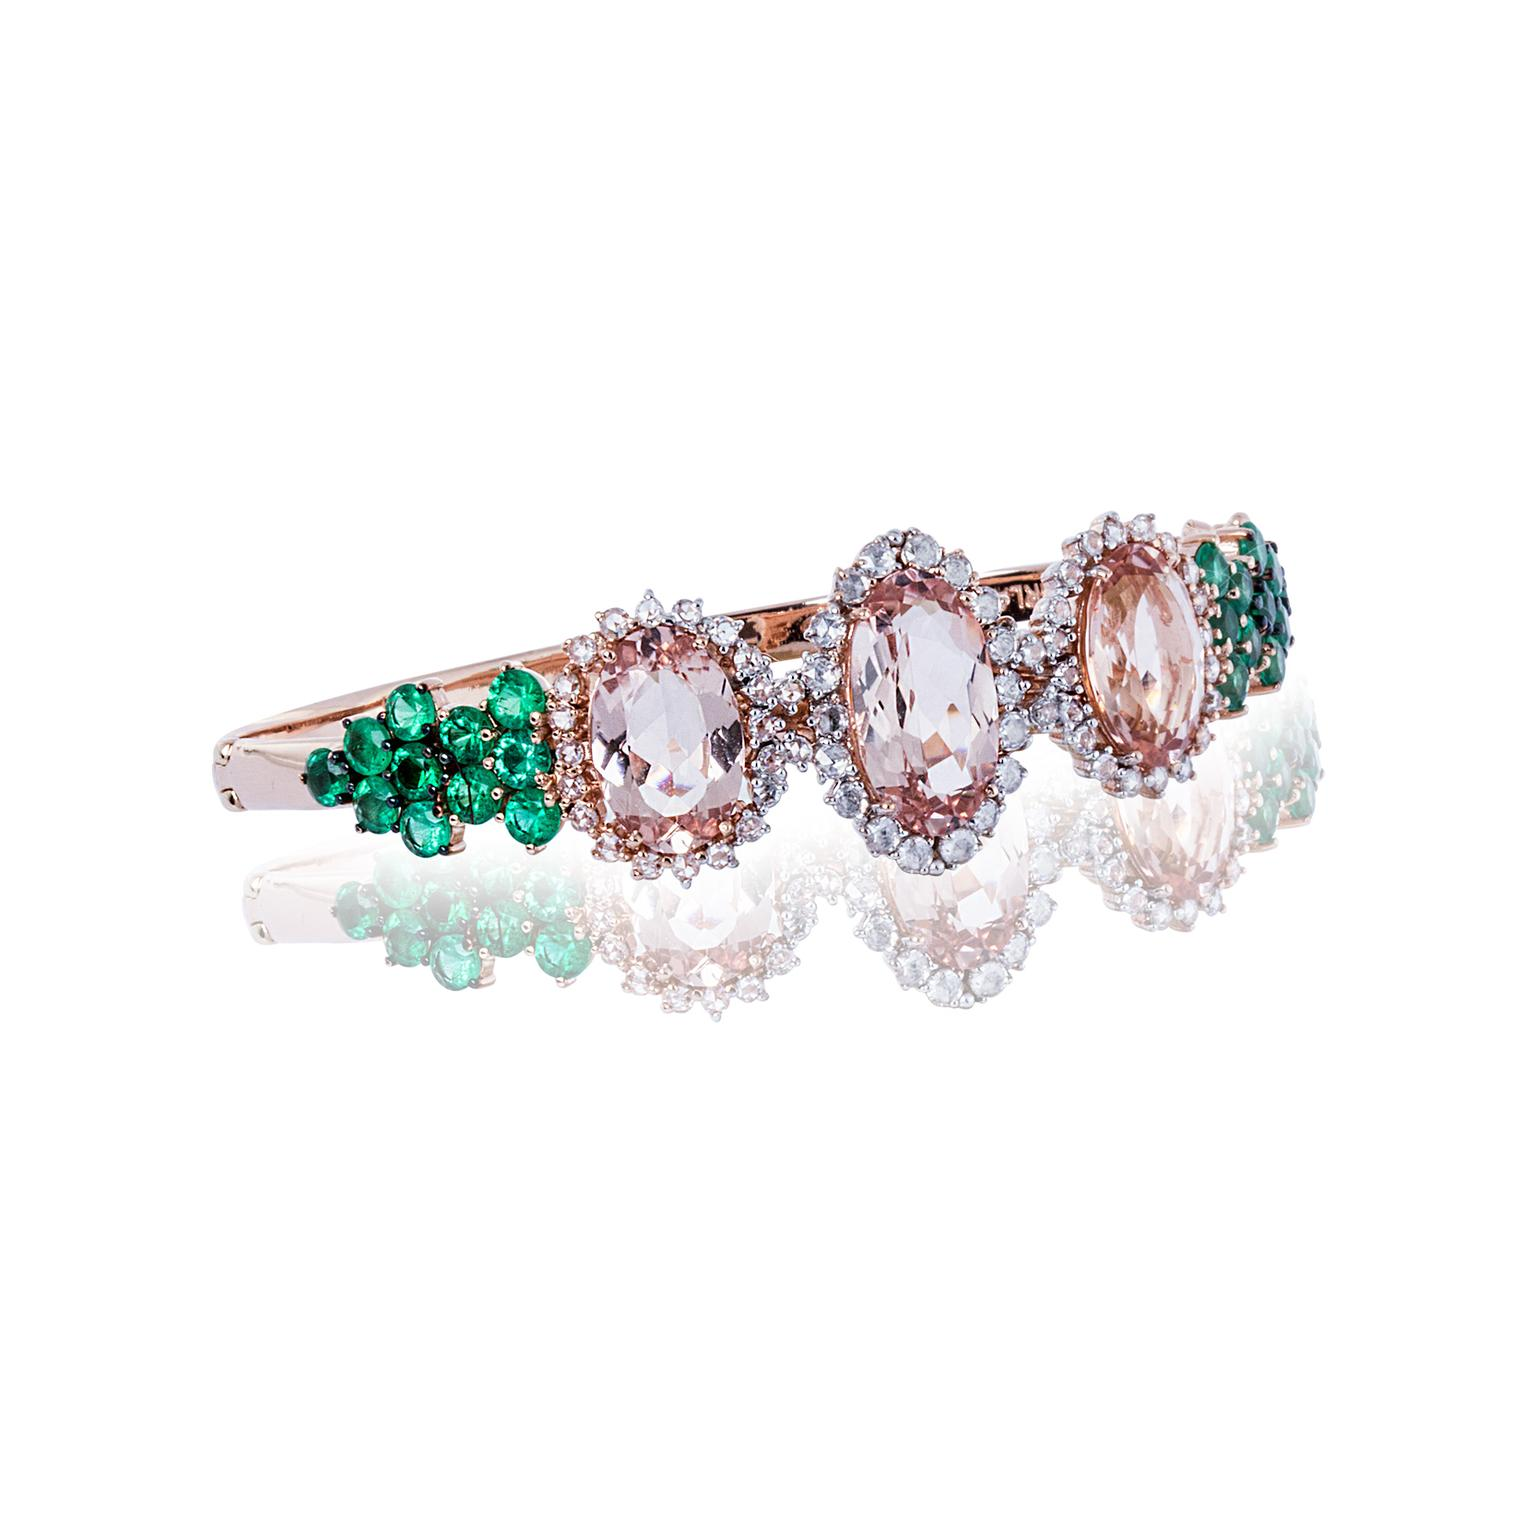 Carla Amorim Three Desires bracelet